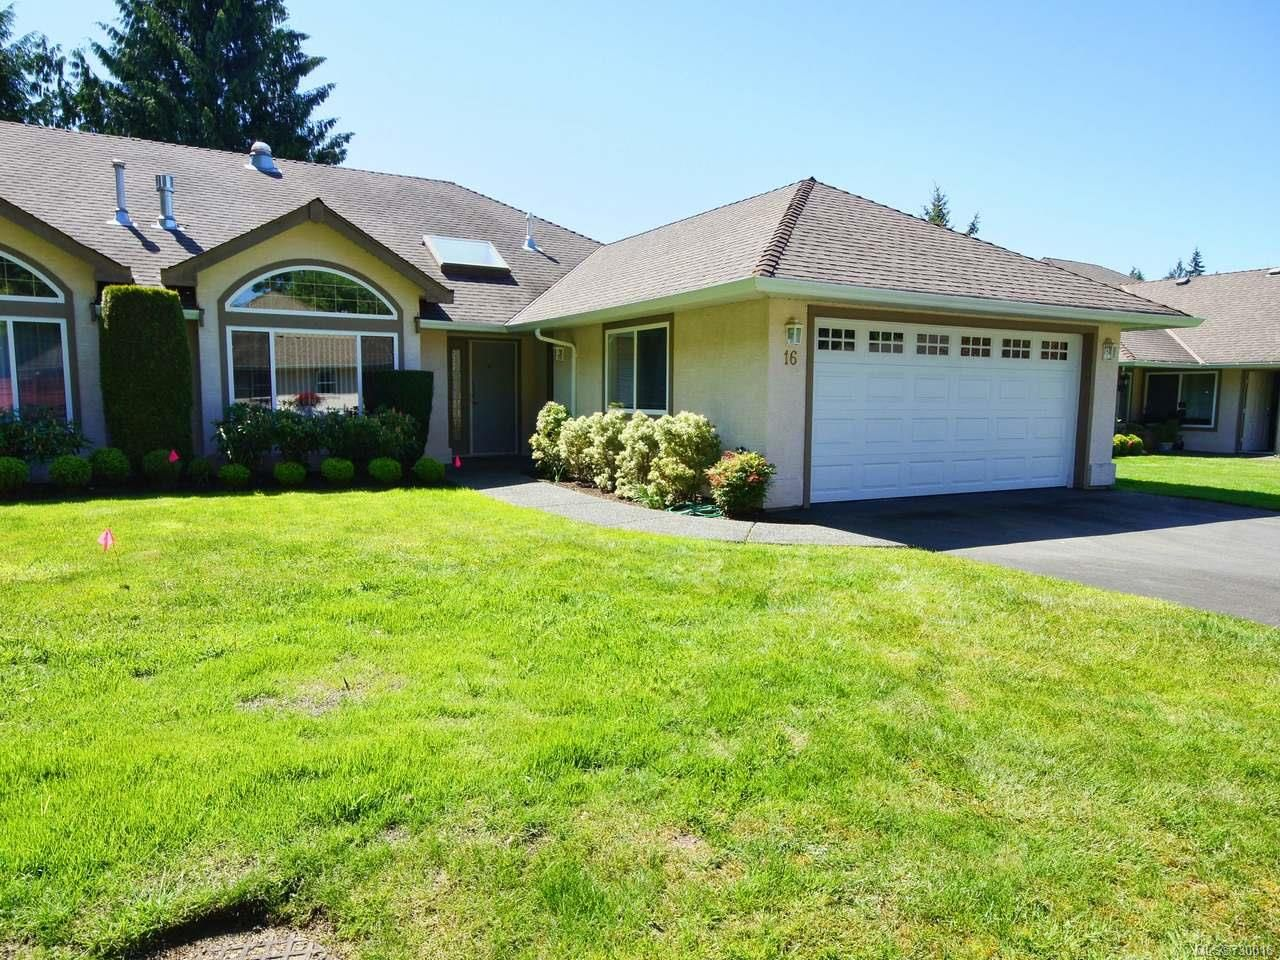 Main Photo: 16 850 ARBUTUS STREET in QUALICUM BEACH: PQ Qualicum Beach Row/Townhouse for sale (Parksville/Qualicum)  : MLS®# 730016